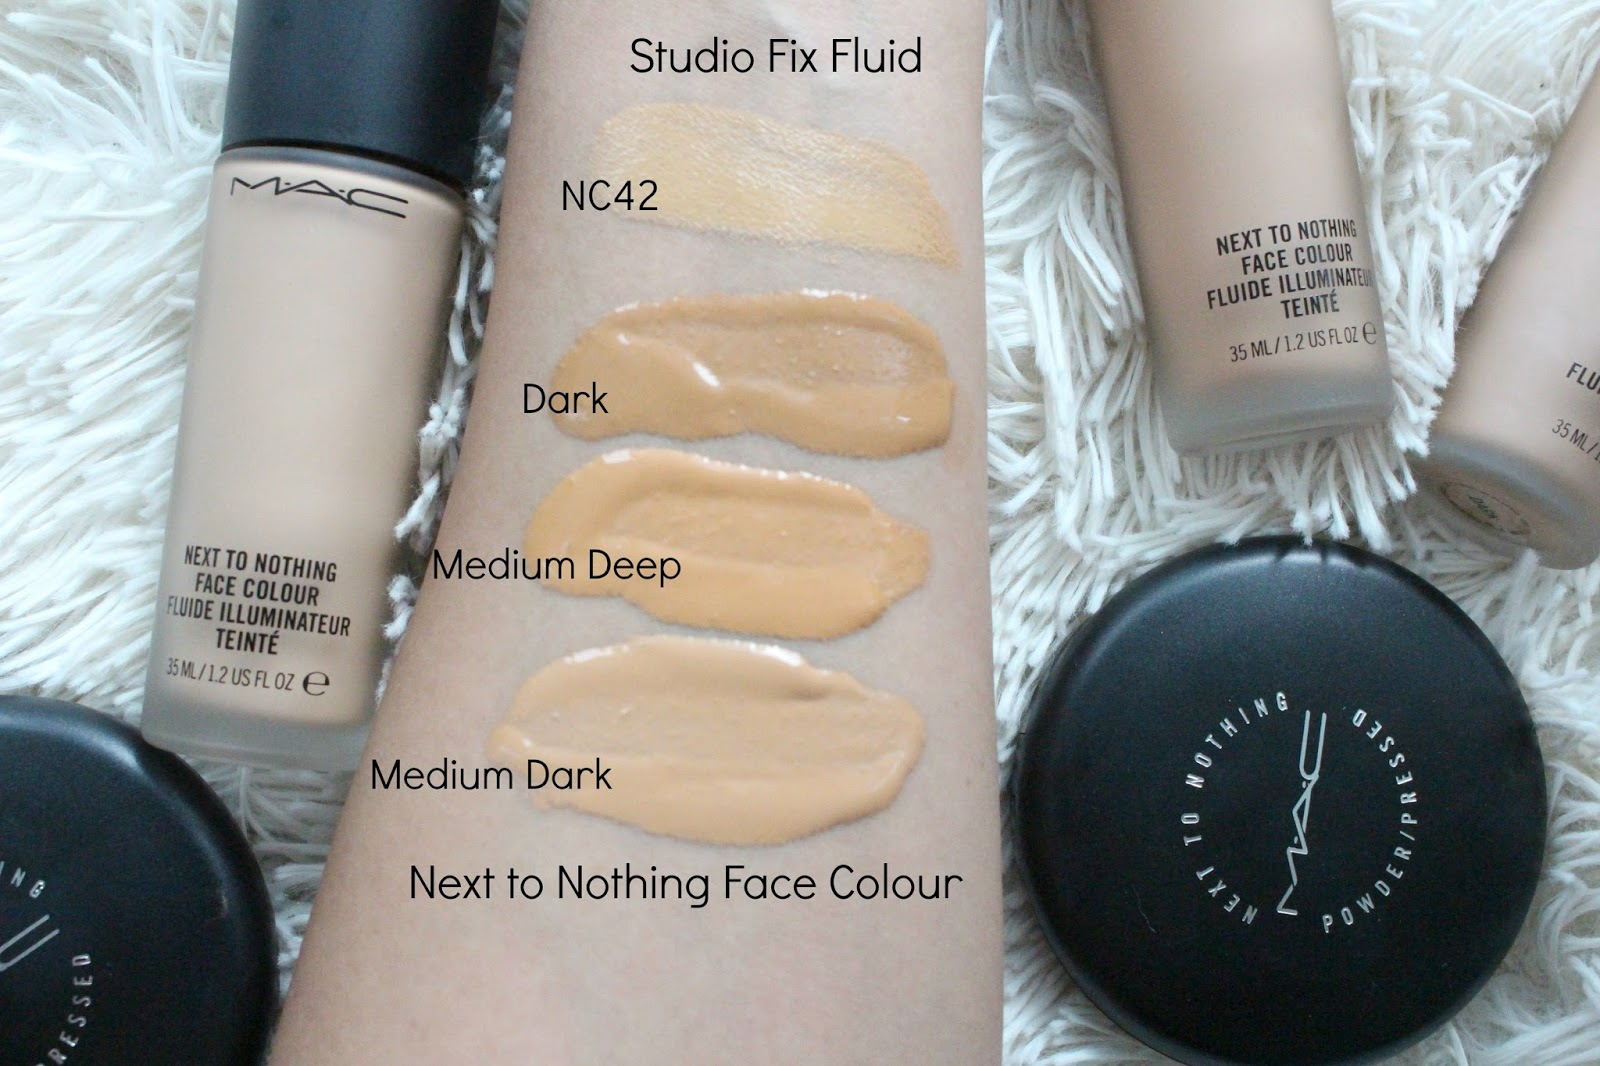 mac next to nothing face color vs studio fix fluid